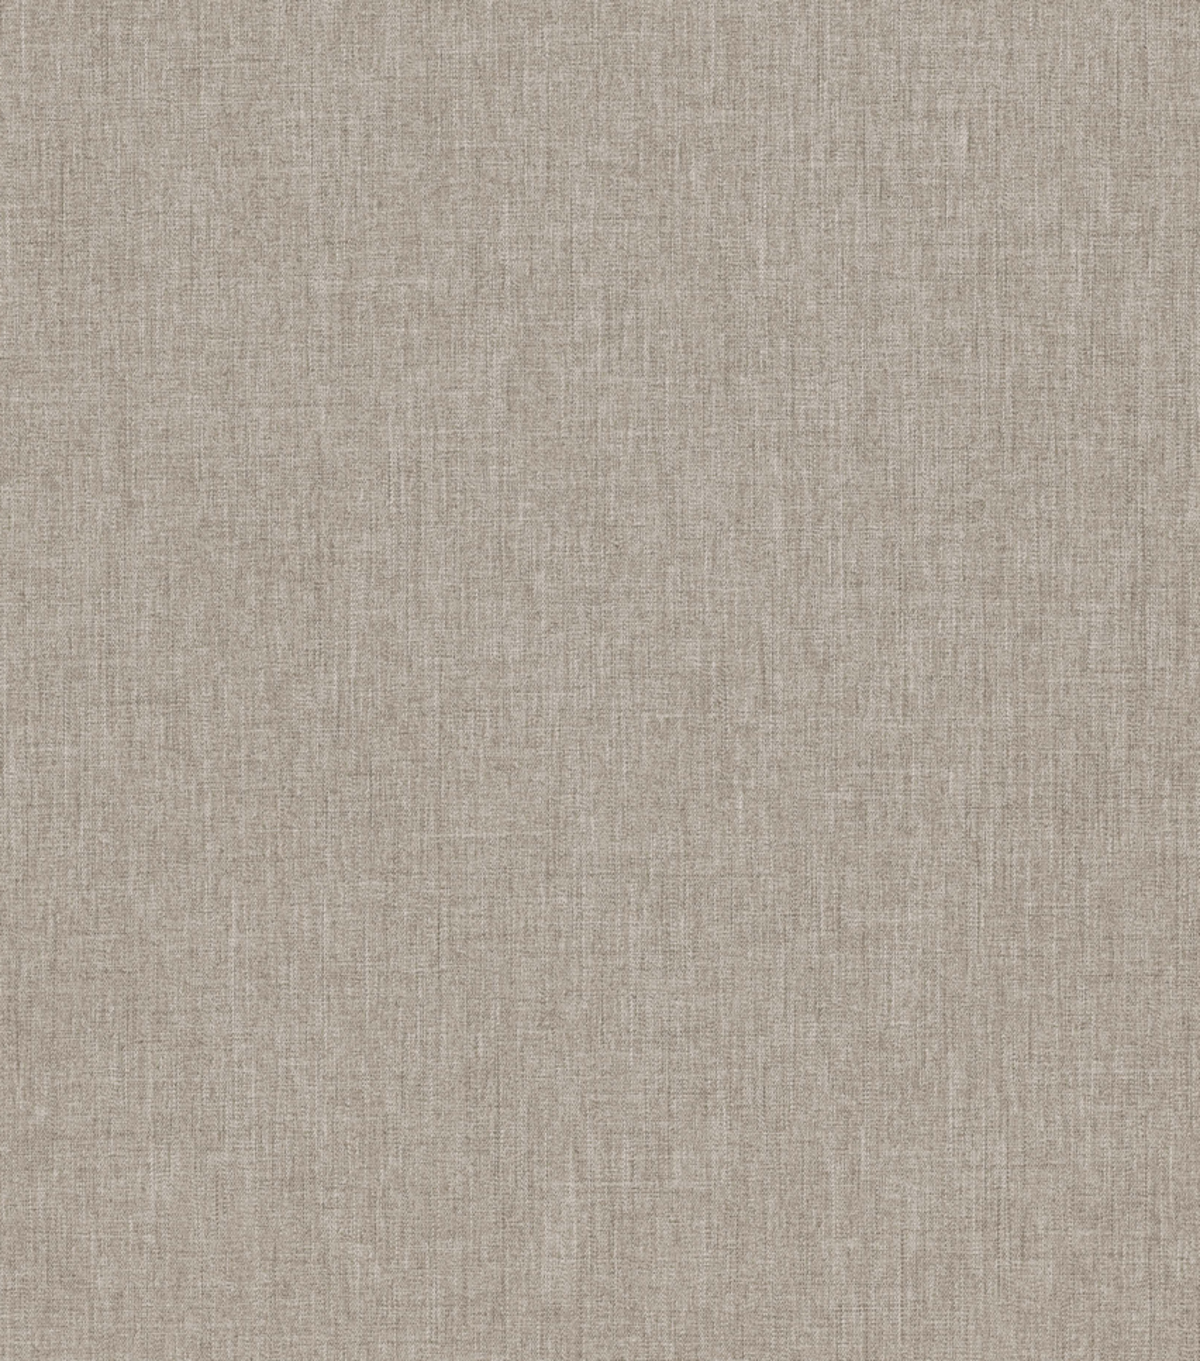 Home Decor 8\u0022x8\u0022 Fabric Swatch-Manhattan Silt